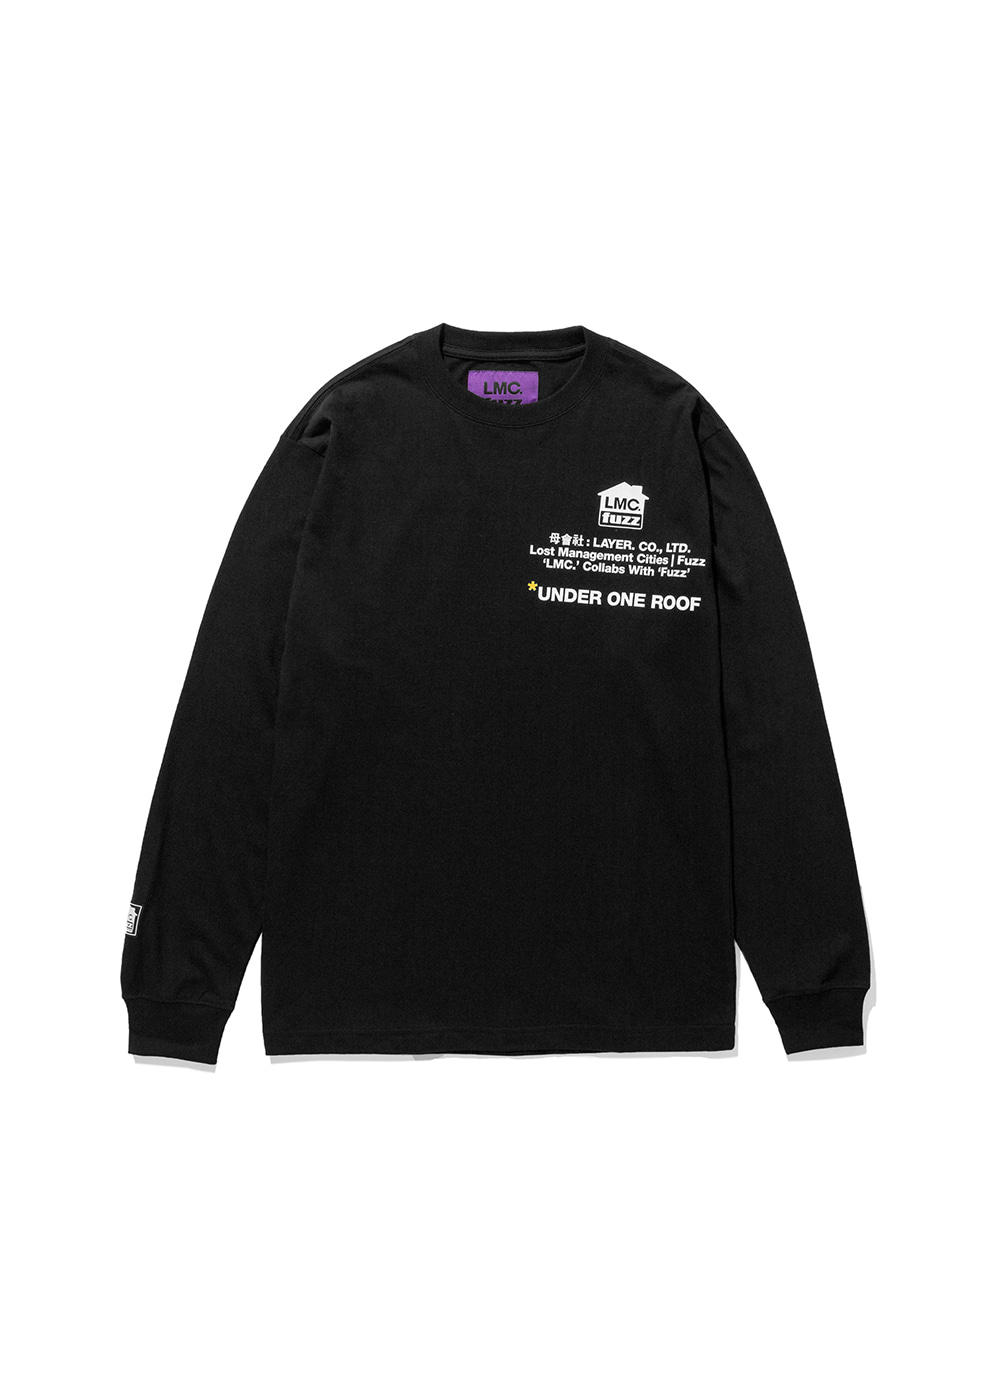 LMC x FUZZ HOUSE LONG SLV TEE black